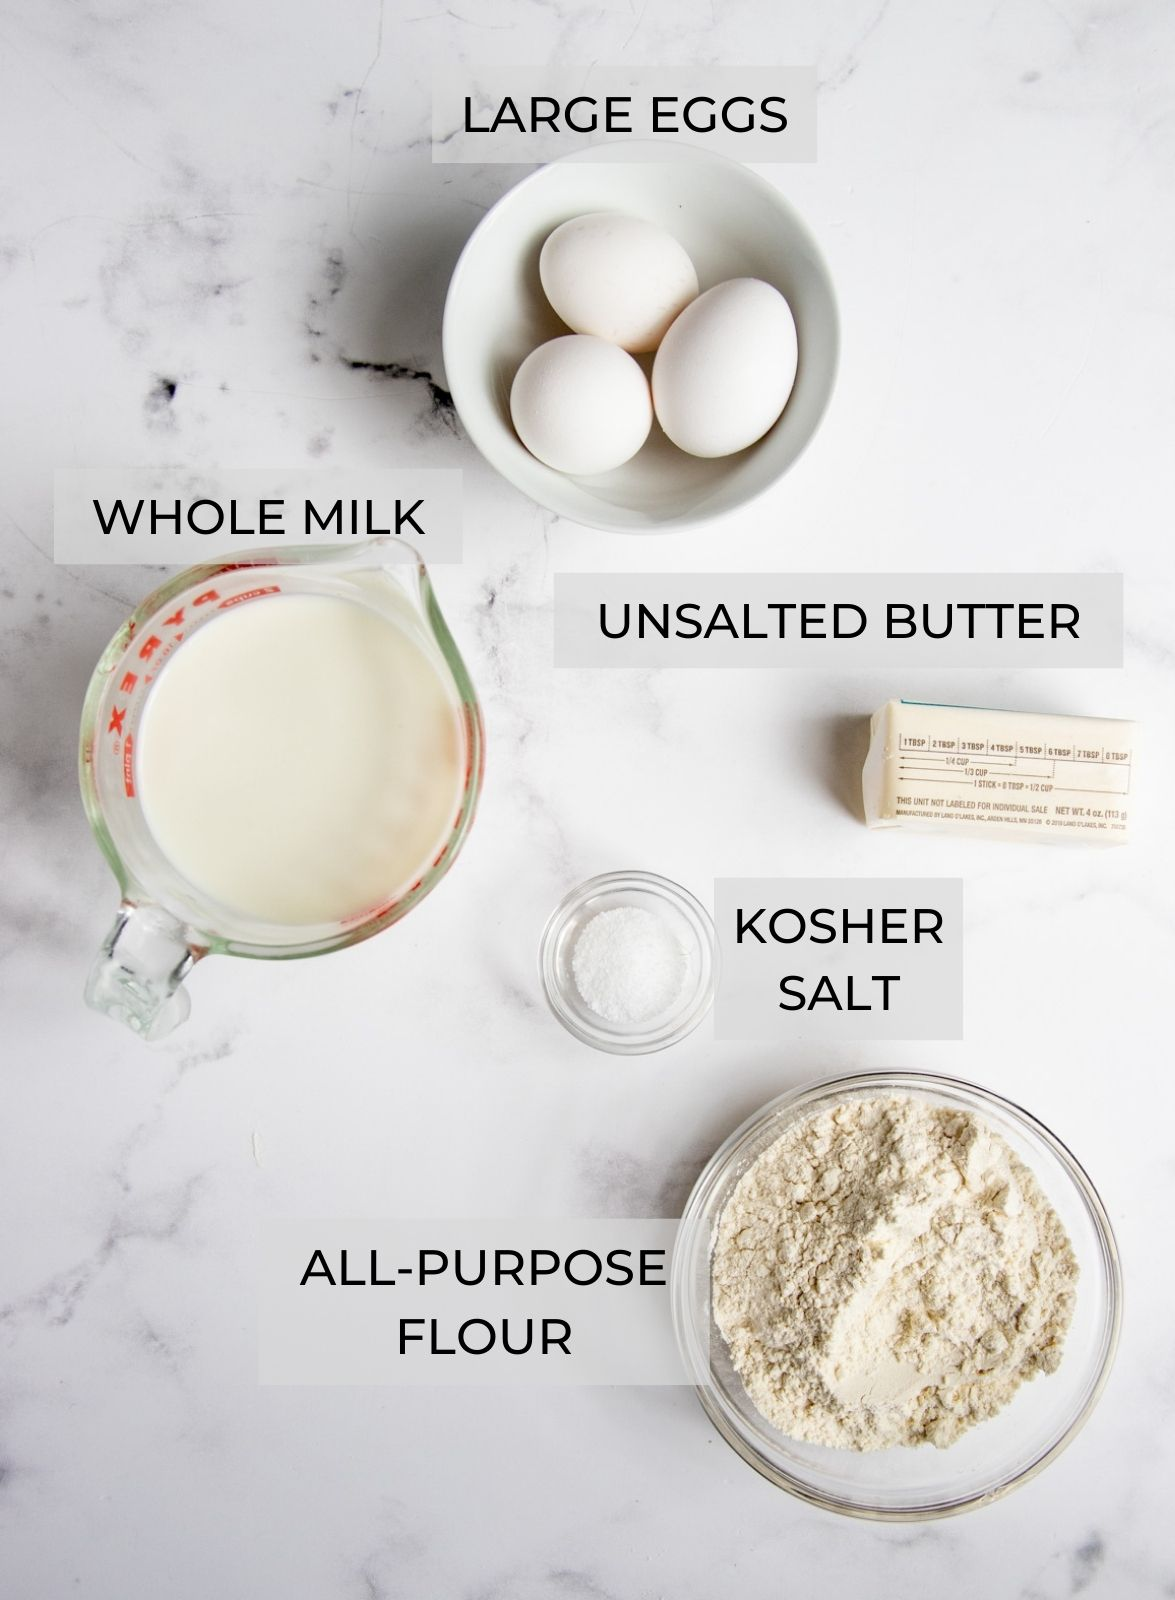 Crepe Ingredients - whole milk, eggs, unsalted butter, salt and flour